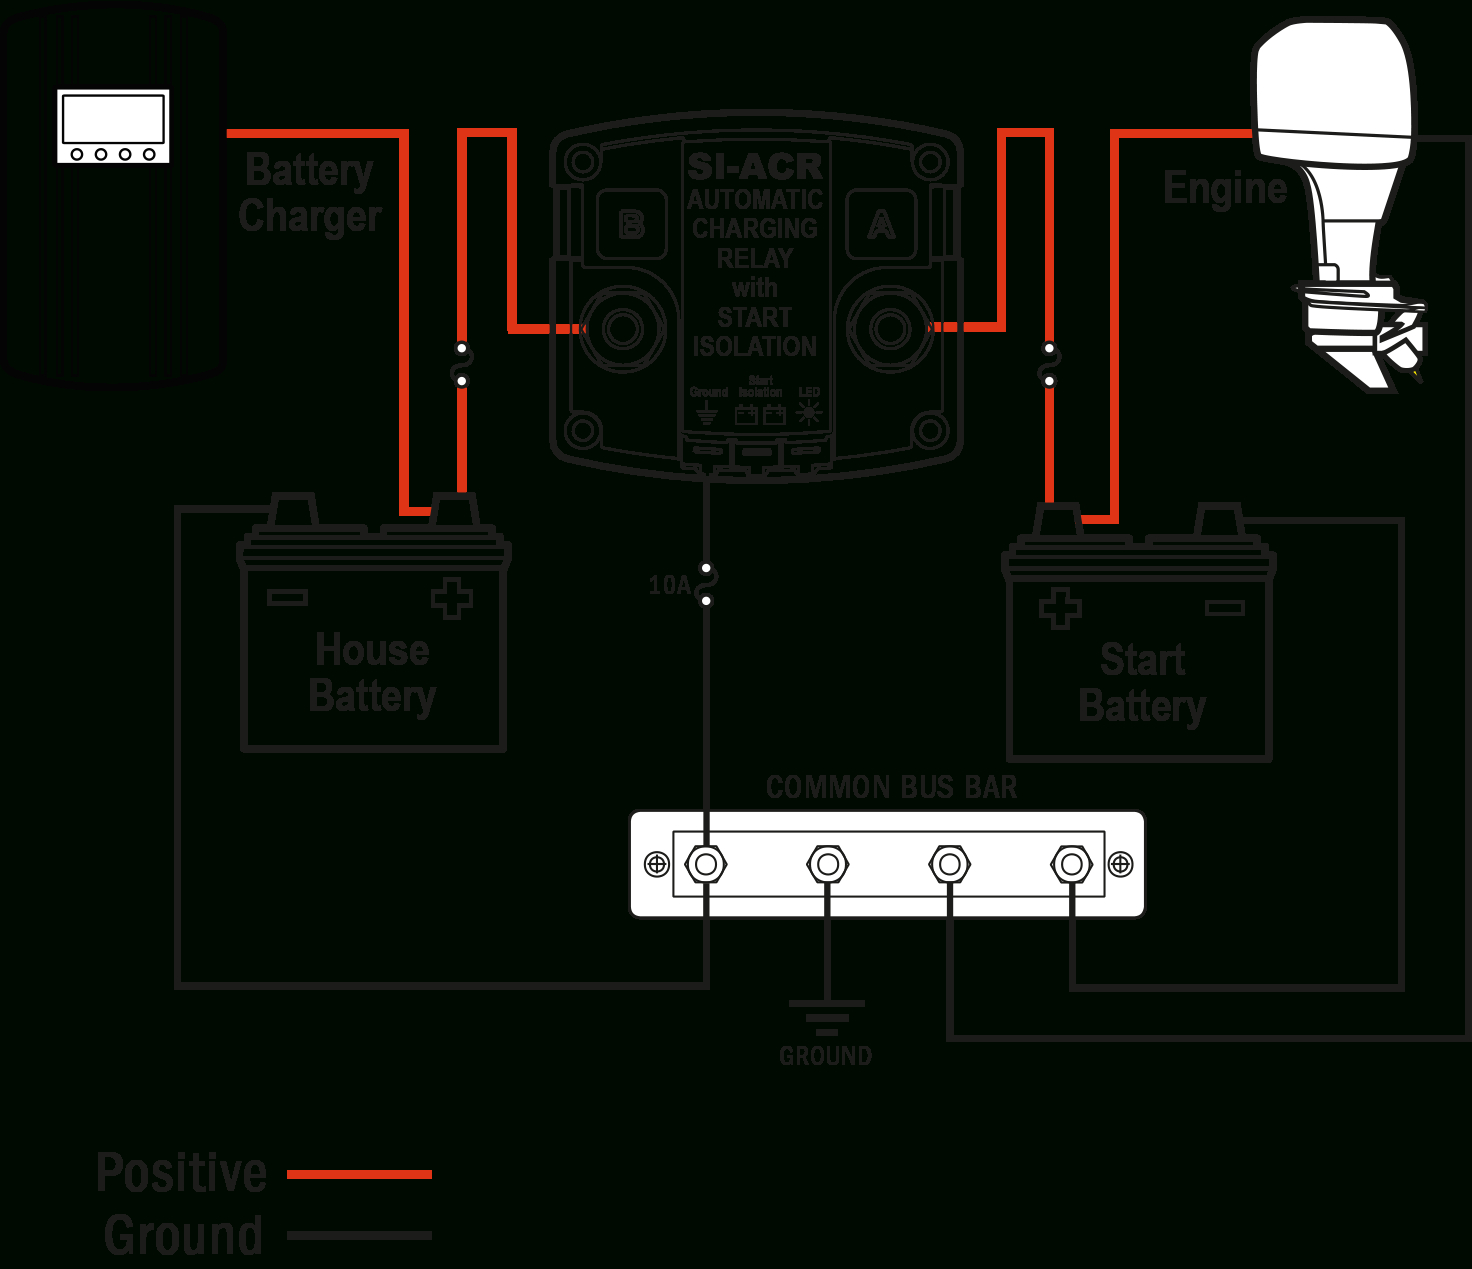 Si-Acr Automatic Charging Relay - 12/24V Dc 120A - Blue Sea Systems - Marine Battery Switch Wiring Diagram